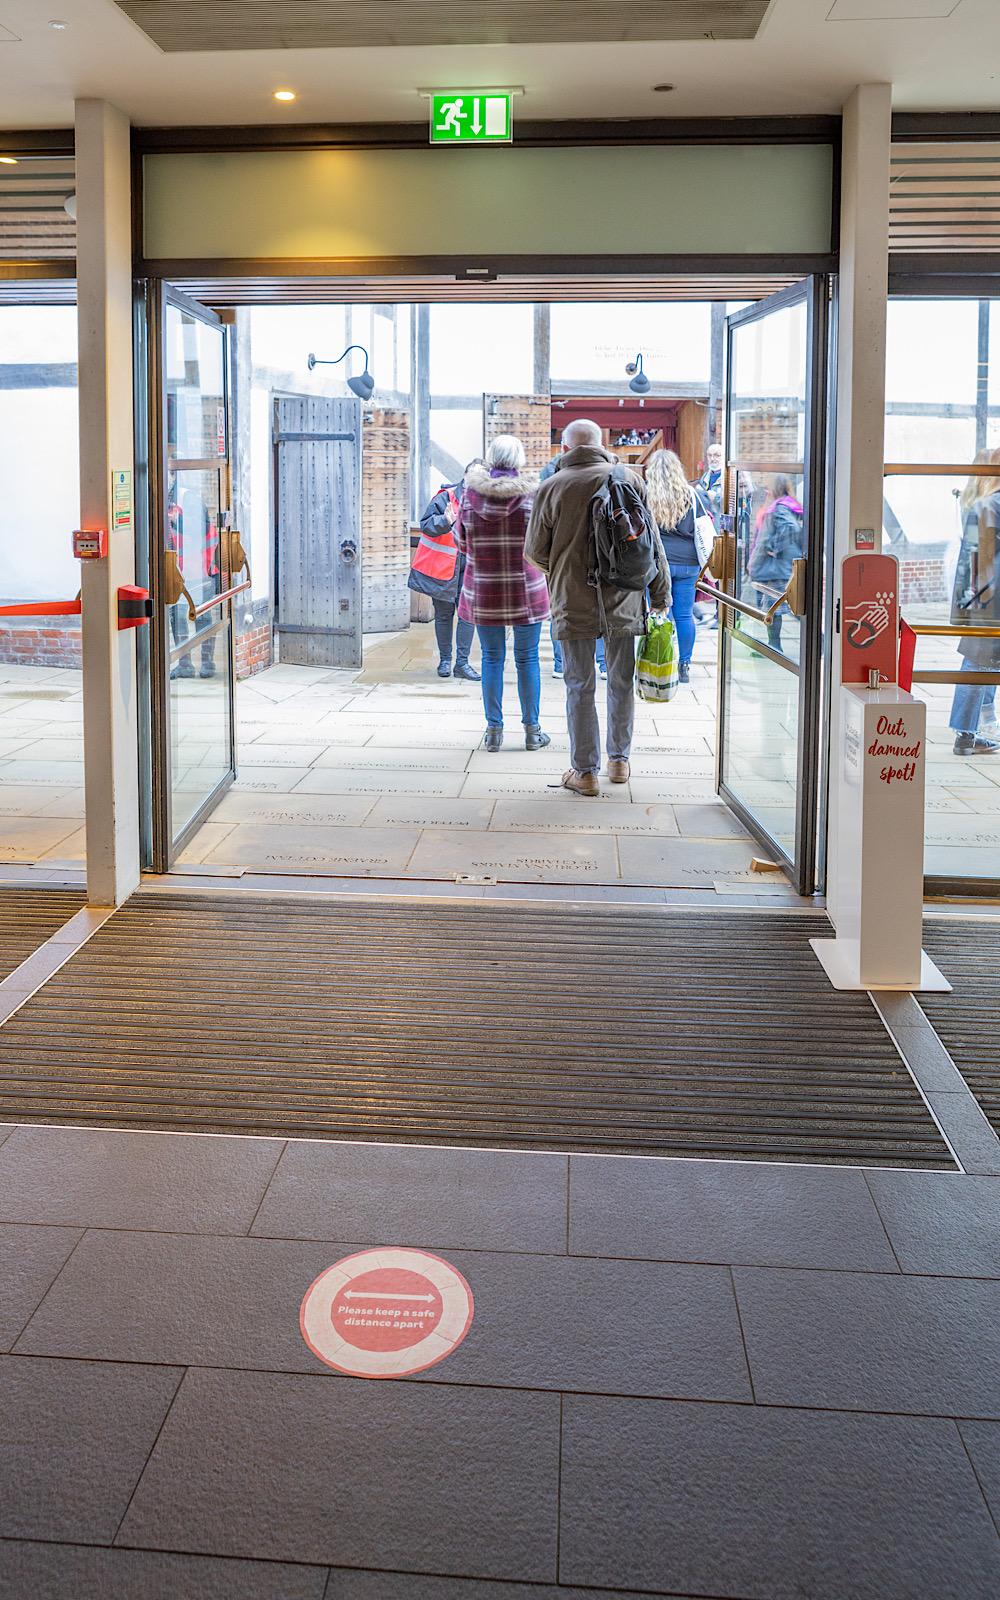 A wide, open door leads to an outdoor piazza where people are walking towards another door